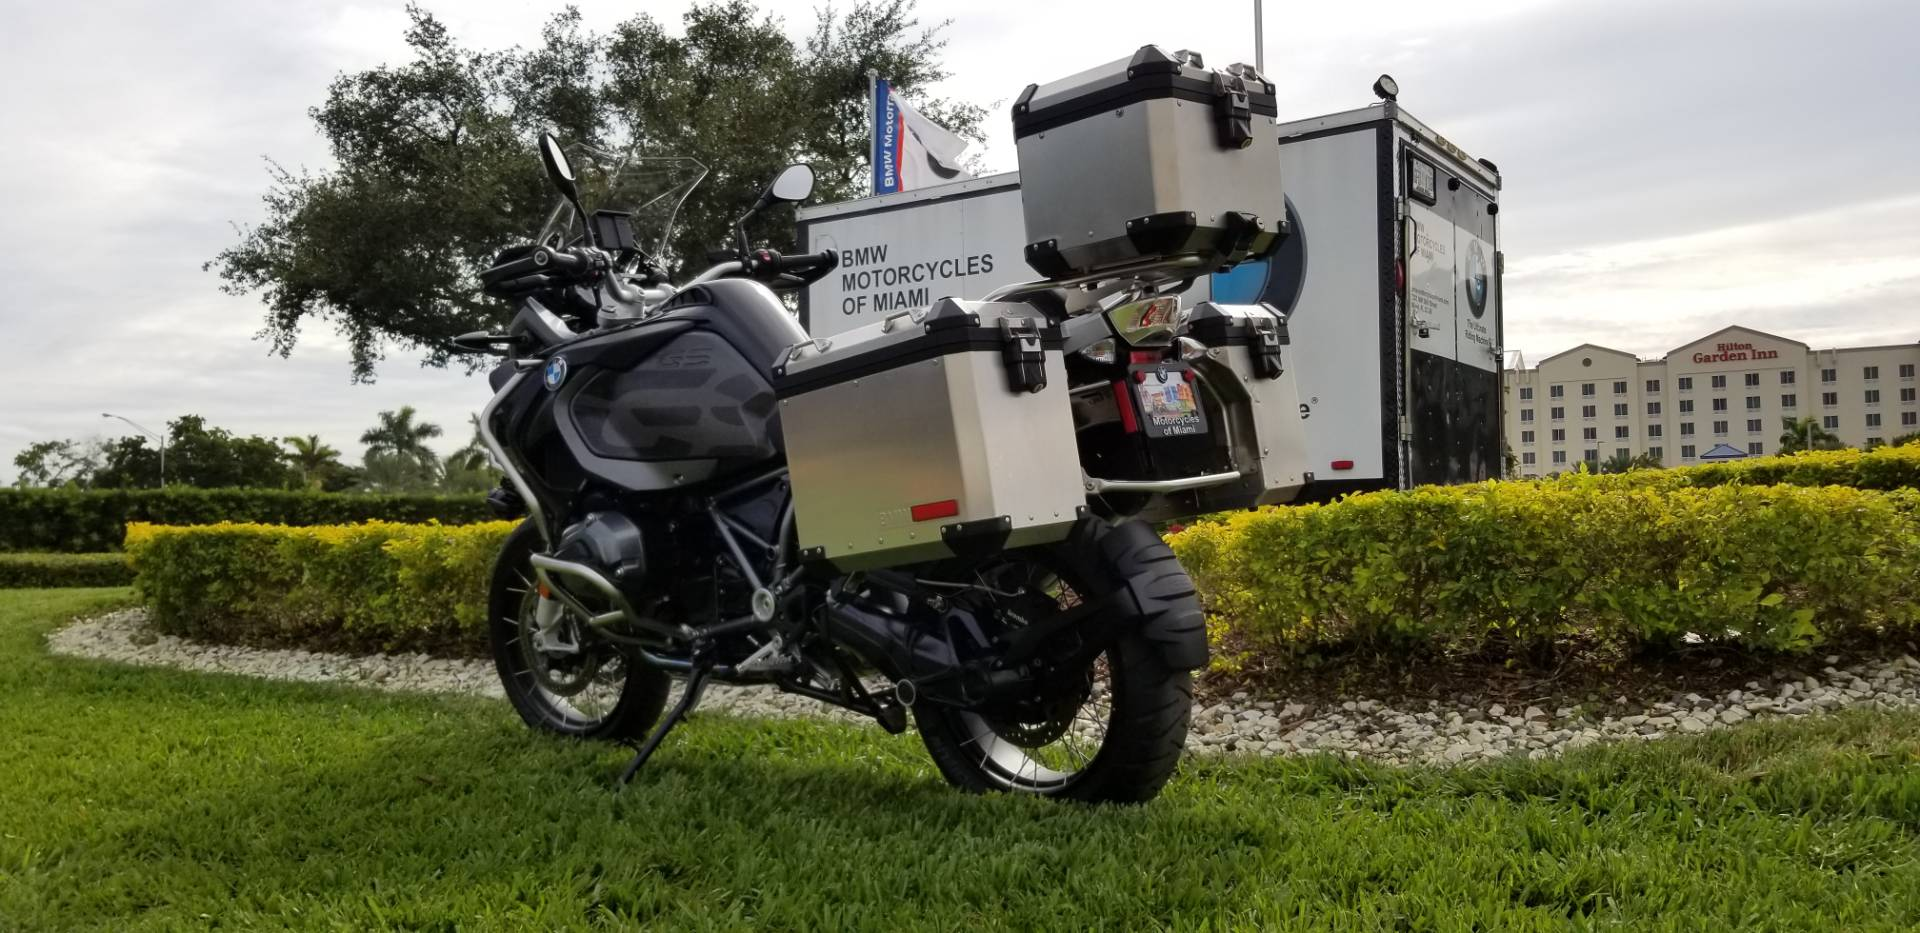 Used 2017 BMW R 1200 GSA for sale, Pre-owned BMW R1200GSA for sale, BMW Motorcycle Adventure, used BMW Adventure triple black, BMW Motorcycles of Miami, Motorcycles of Miami, Motorcycles Miami, New Motorcycles, Used Motorcycles, pre-owned. #BMWMotorcyclesOfMiami #MotorcyclesOfMiami - Photo 9